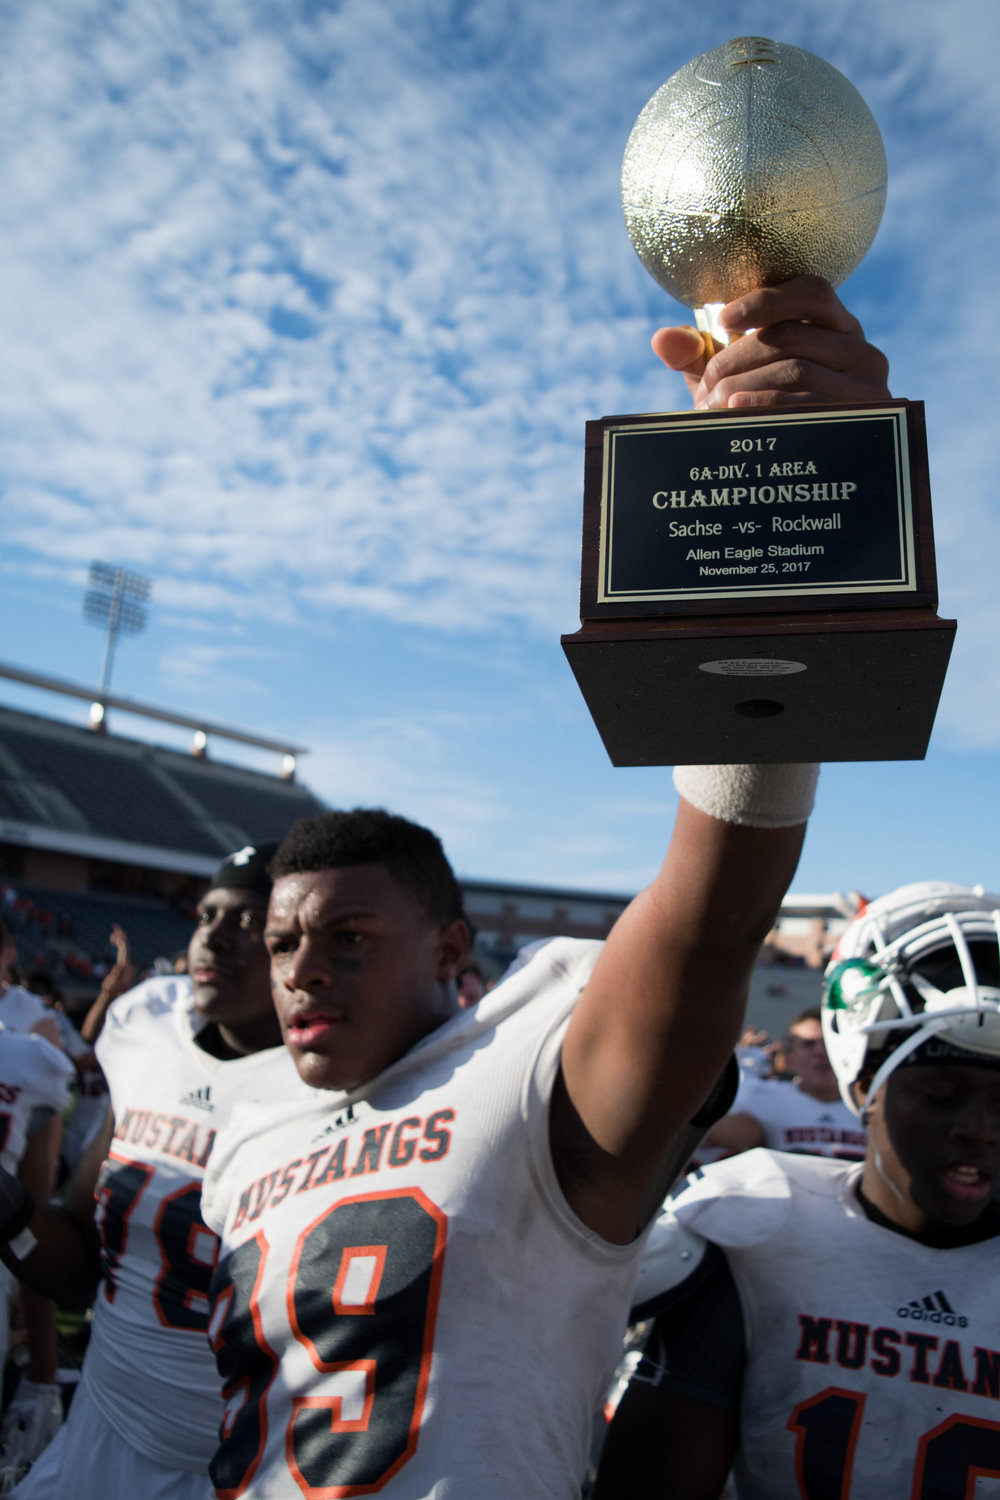 Sachse's Tyler Lacy holds up the UIL Division 1 Area Championship trophy | Shot with Nikon D500 w/ Nikkor DX 18-55 f3.5-5.6 GII